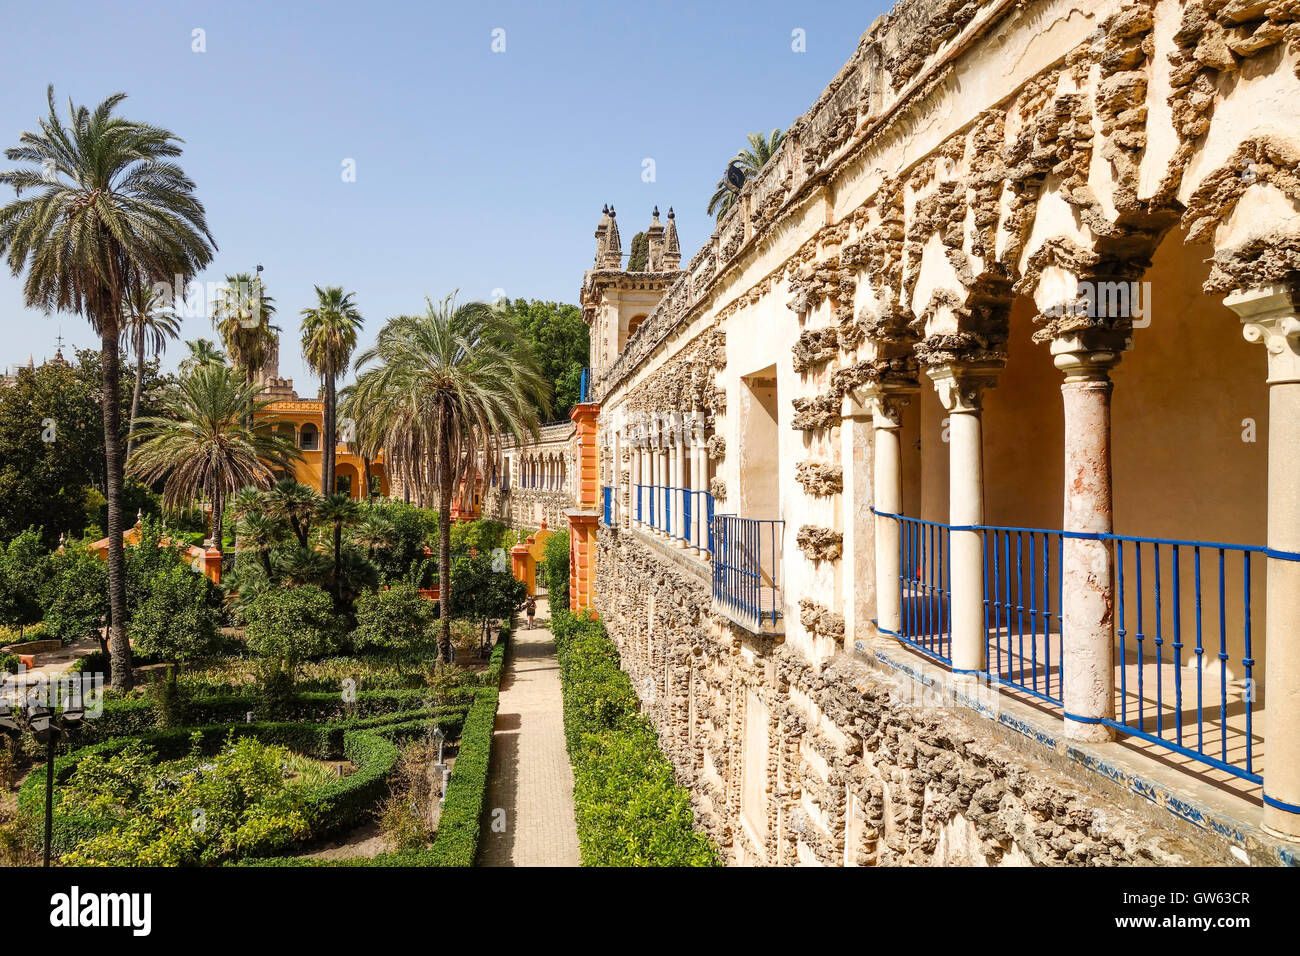 Alcazar, Seville, Italian Design, Grotto Gallery At The Gardens Around The  Royal Moorish Palace, Andalusia, Spain.